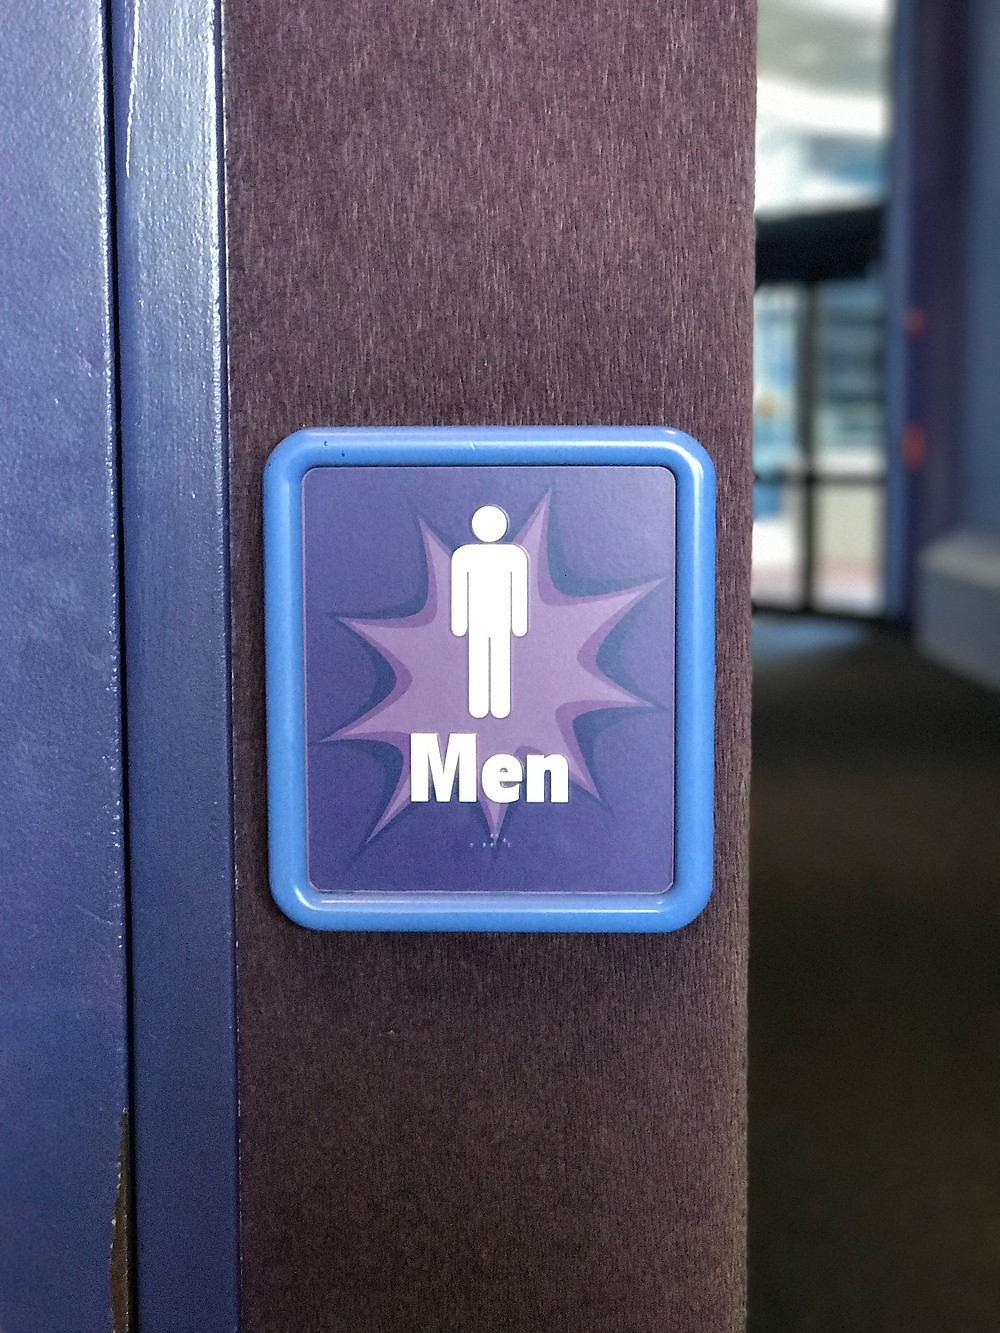 Men's Room Sign, Innoventions West Loo